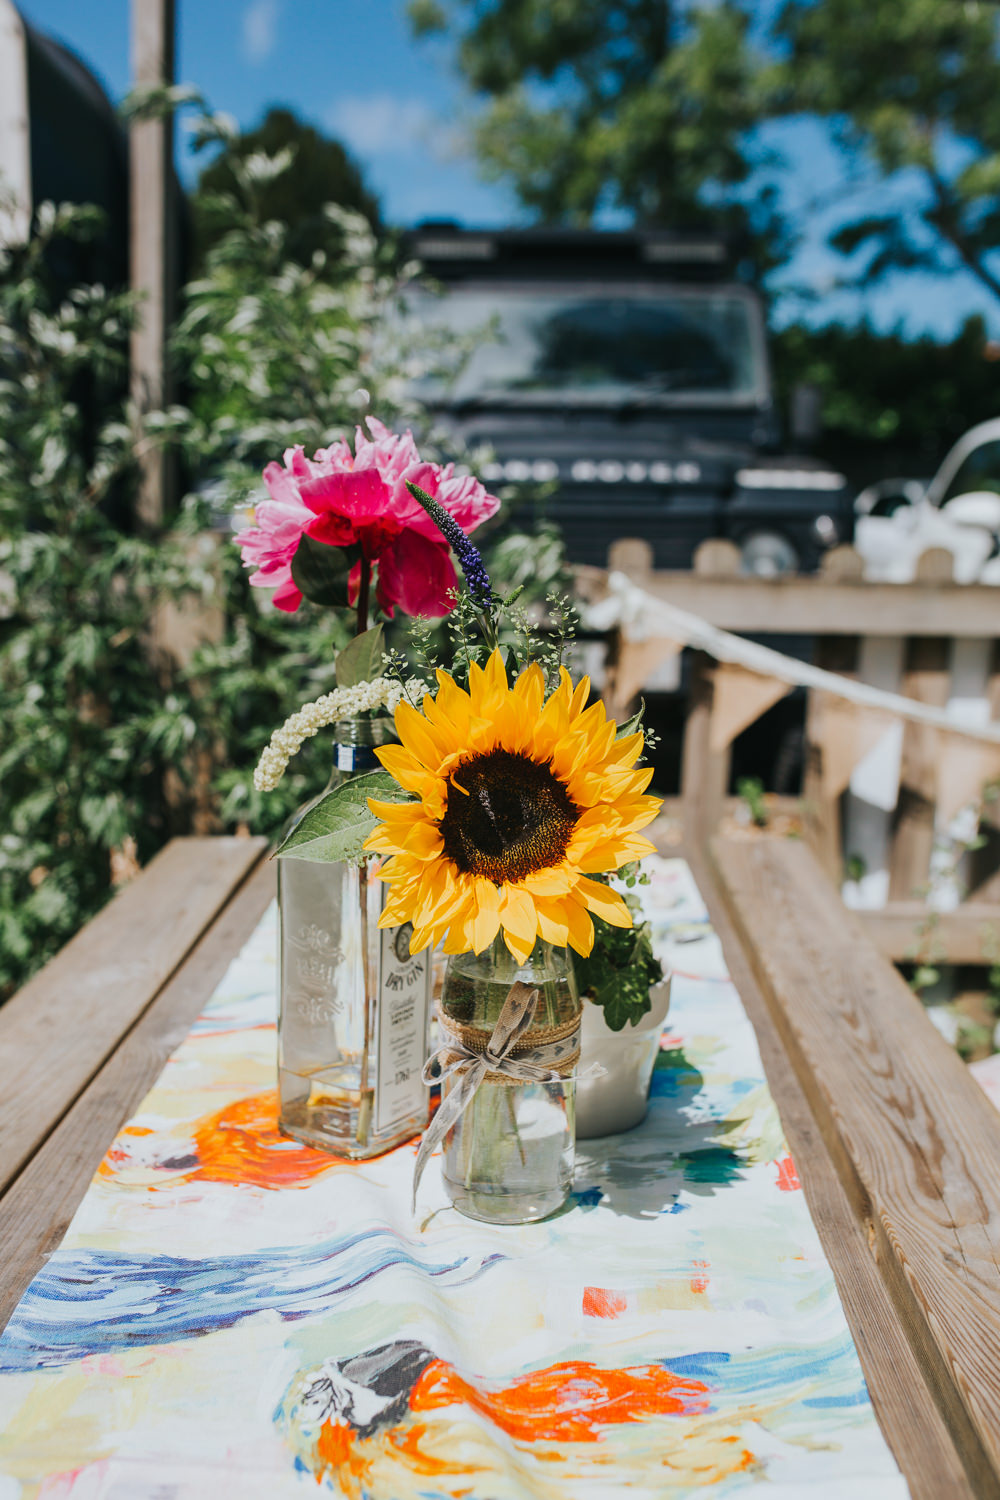 Bottle Jar Flowers Sunflower Table Decor Colourful Bright Summer Pub Wedding Charlotte Razzell Photography